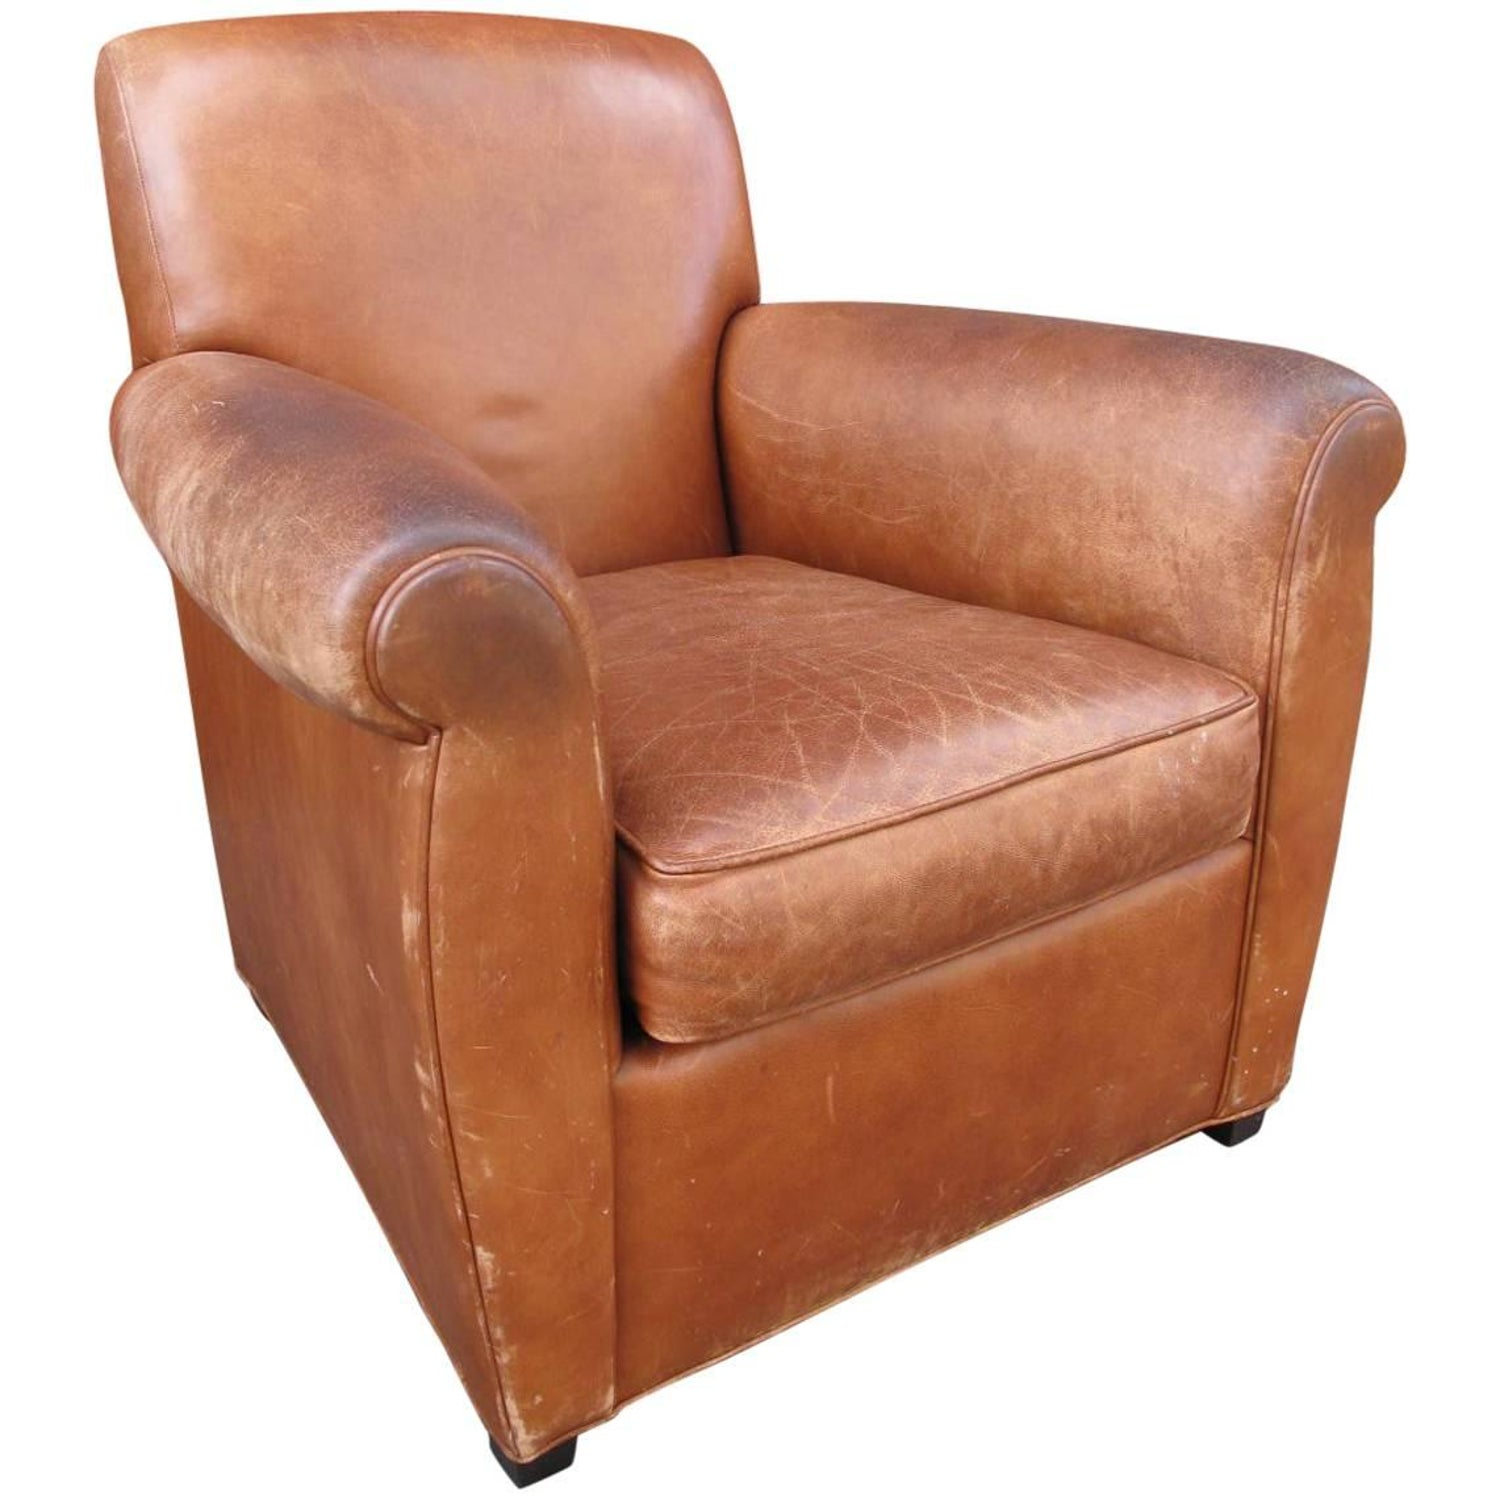 Coach for Baker Leather Club Chair at 1stdibs